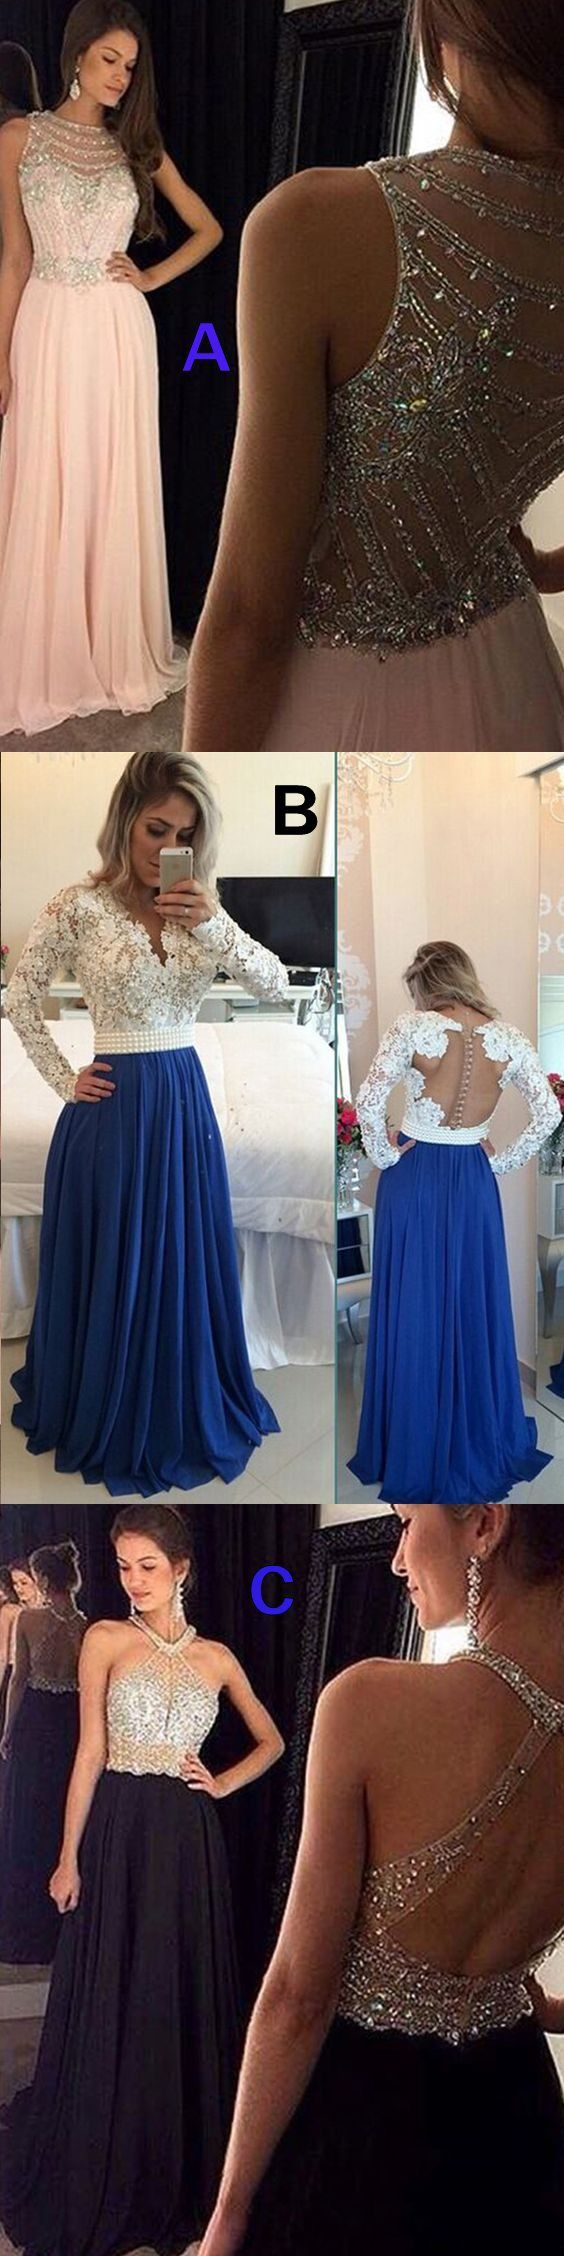 best images about prom ideas on pinterest crew neck prom